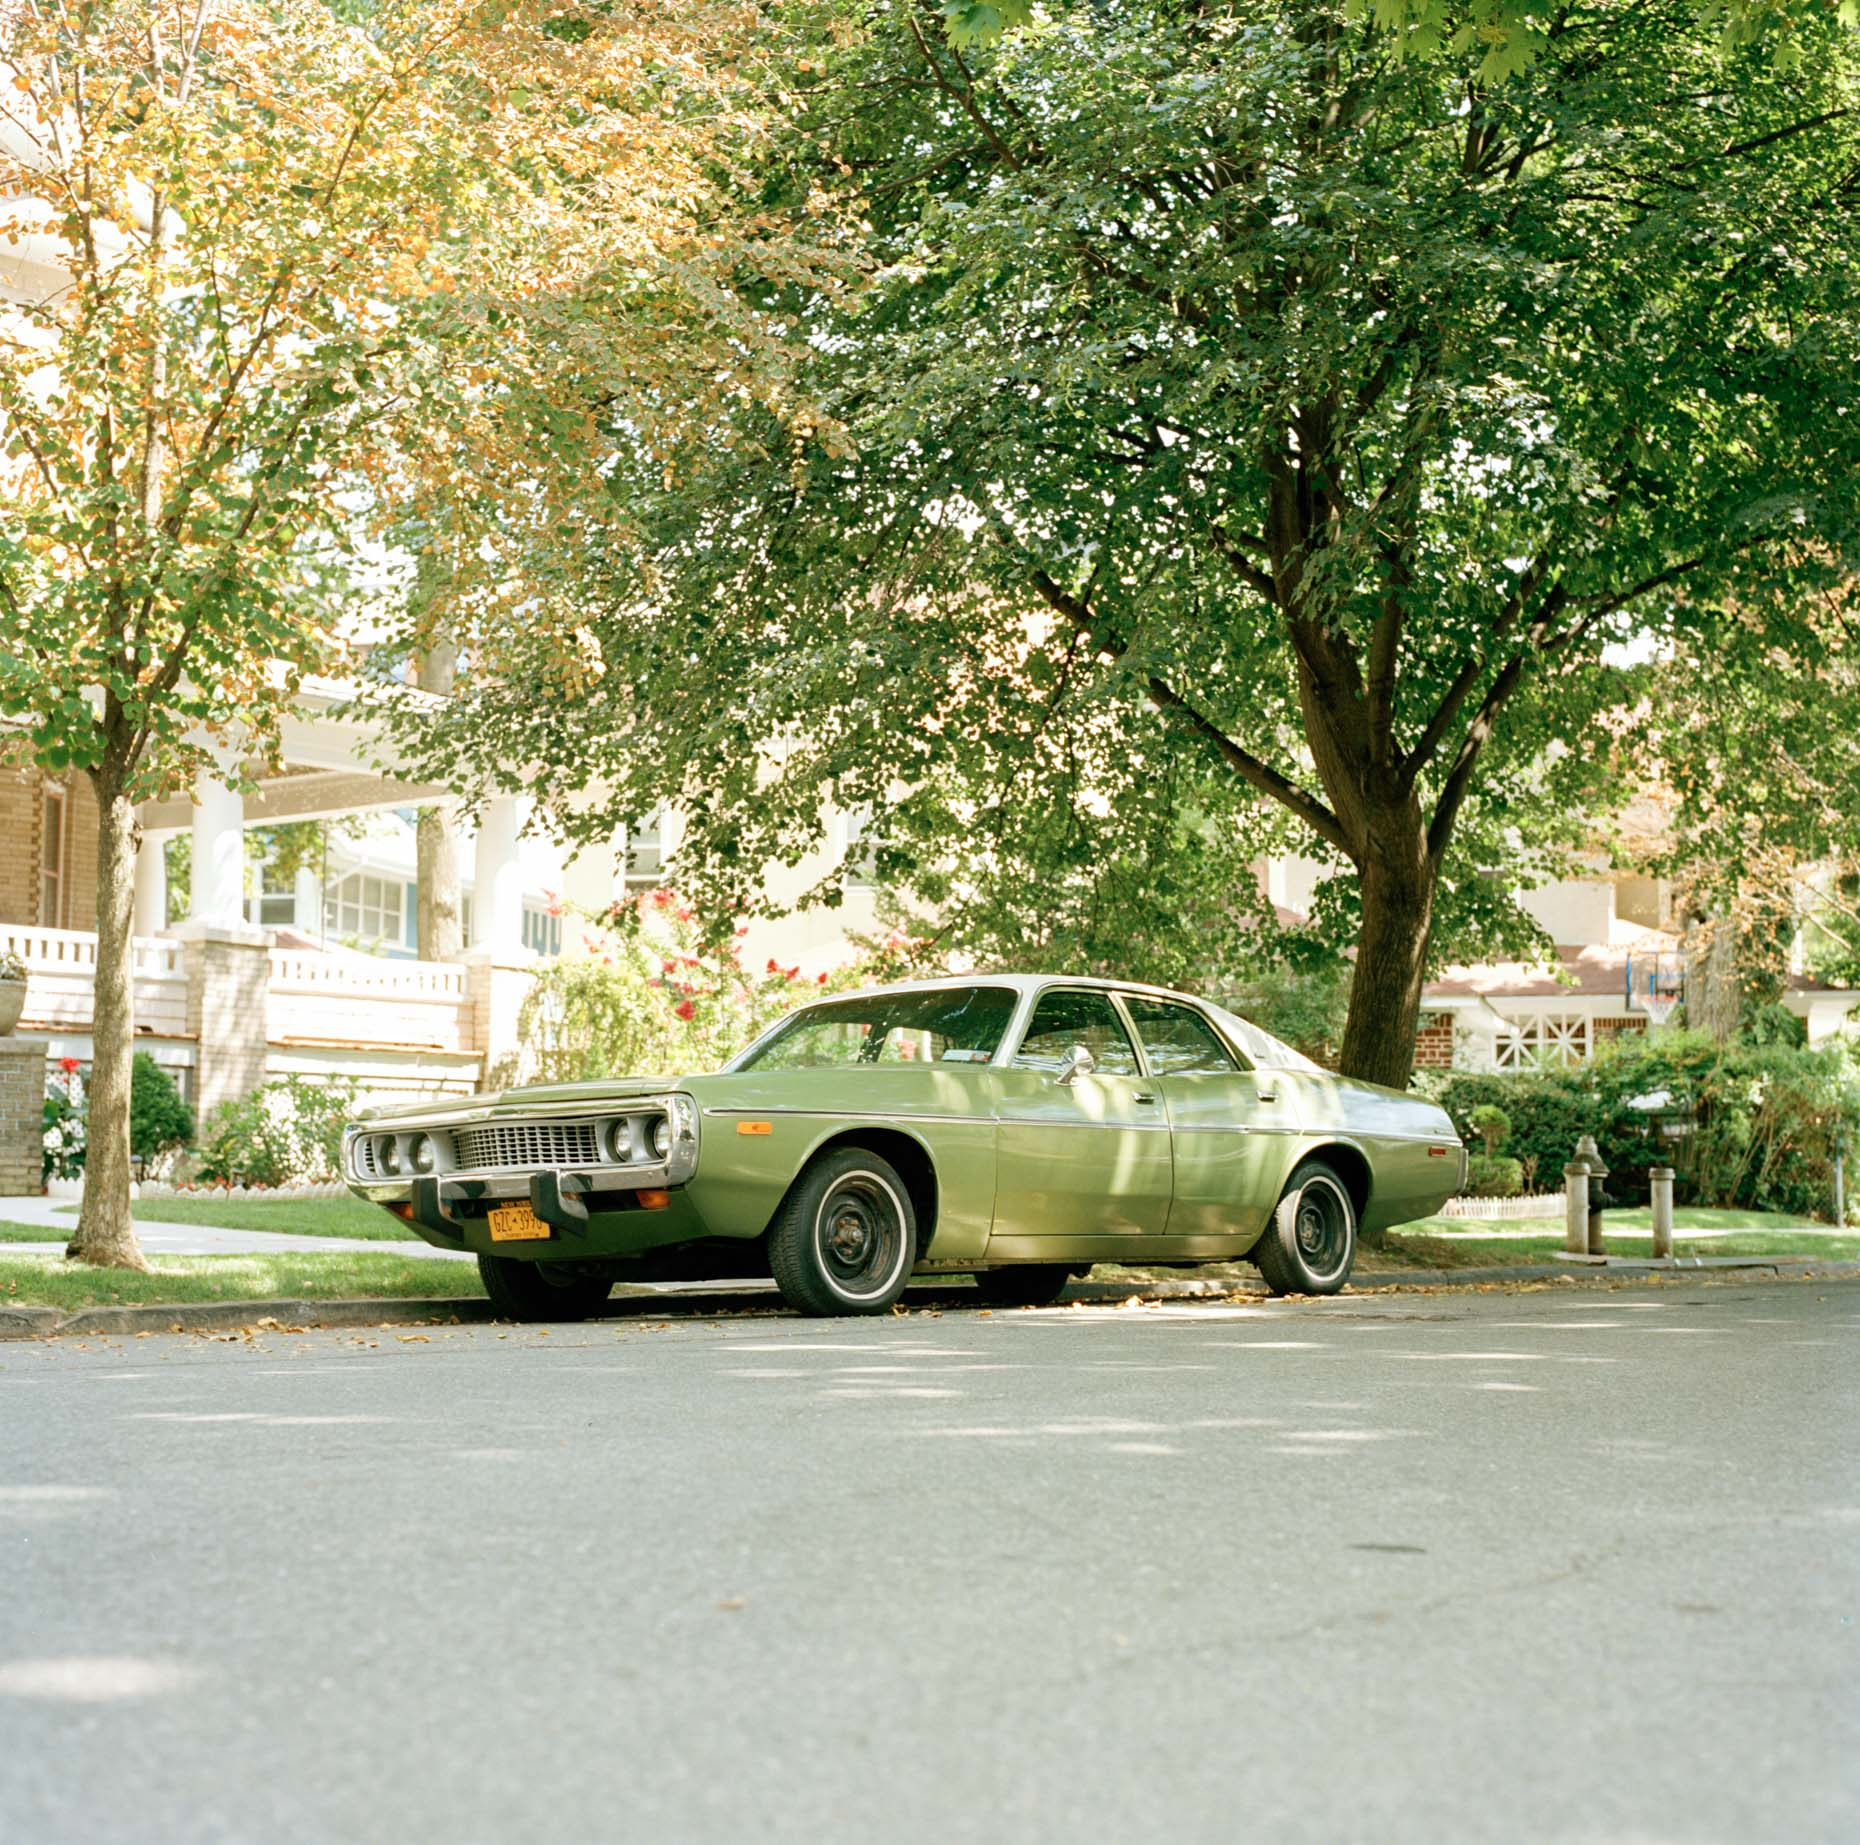 A vintage car sits in a quiet street in Ditmas Park, Brooklyn  on a July afternoon